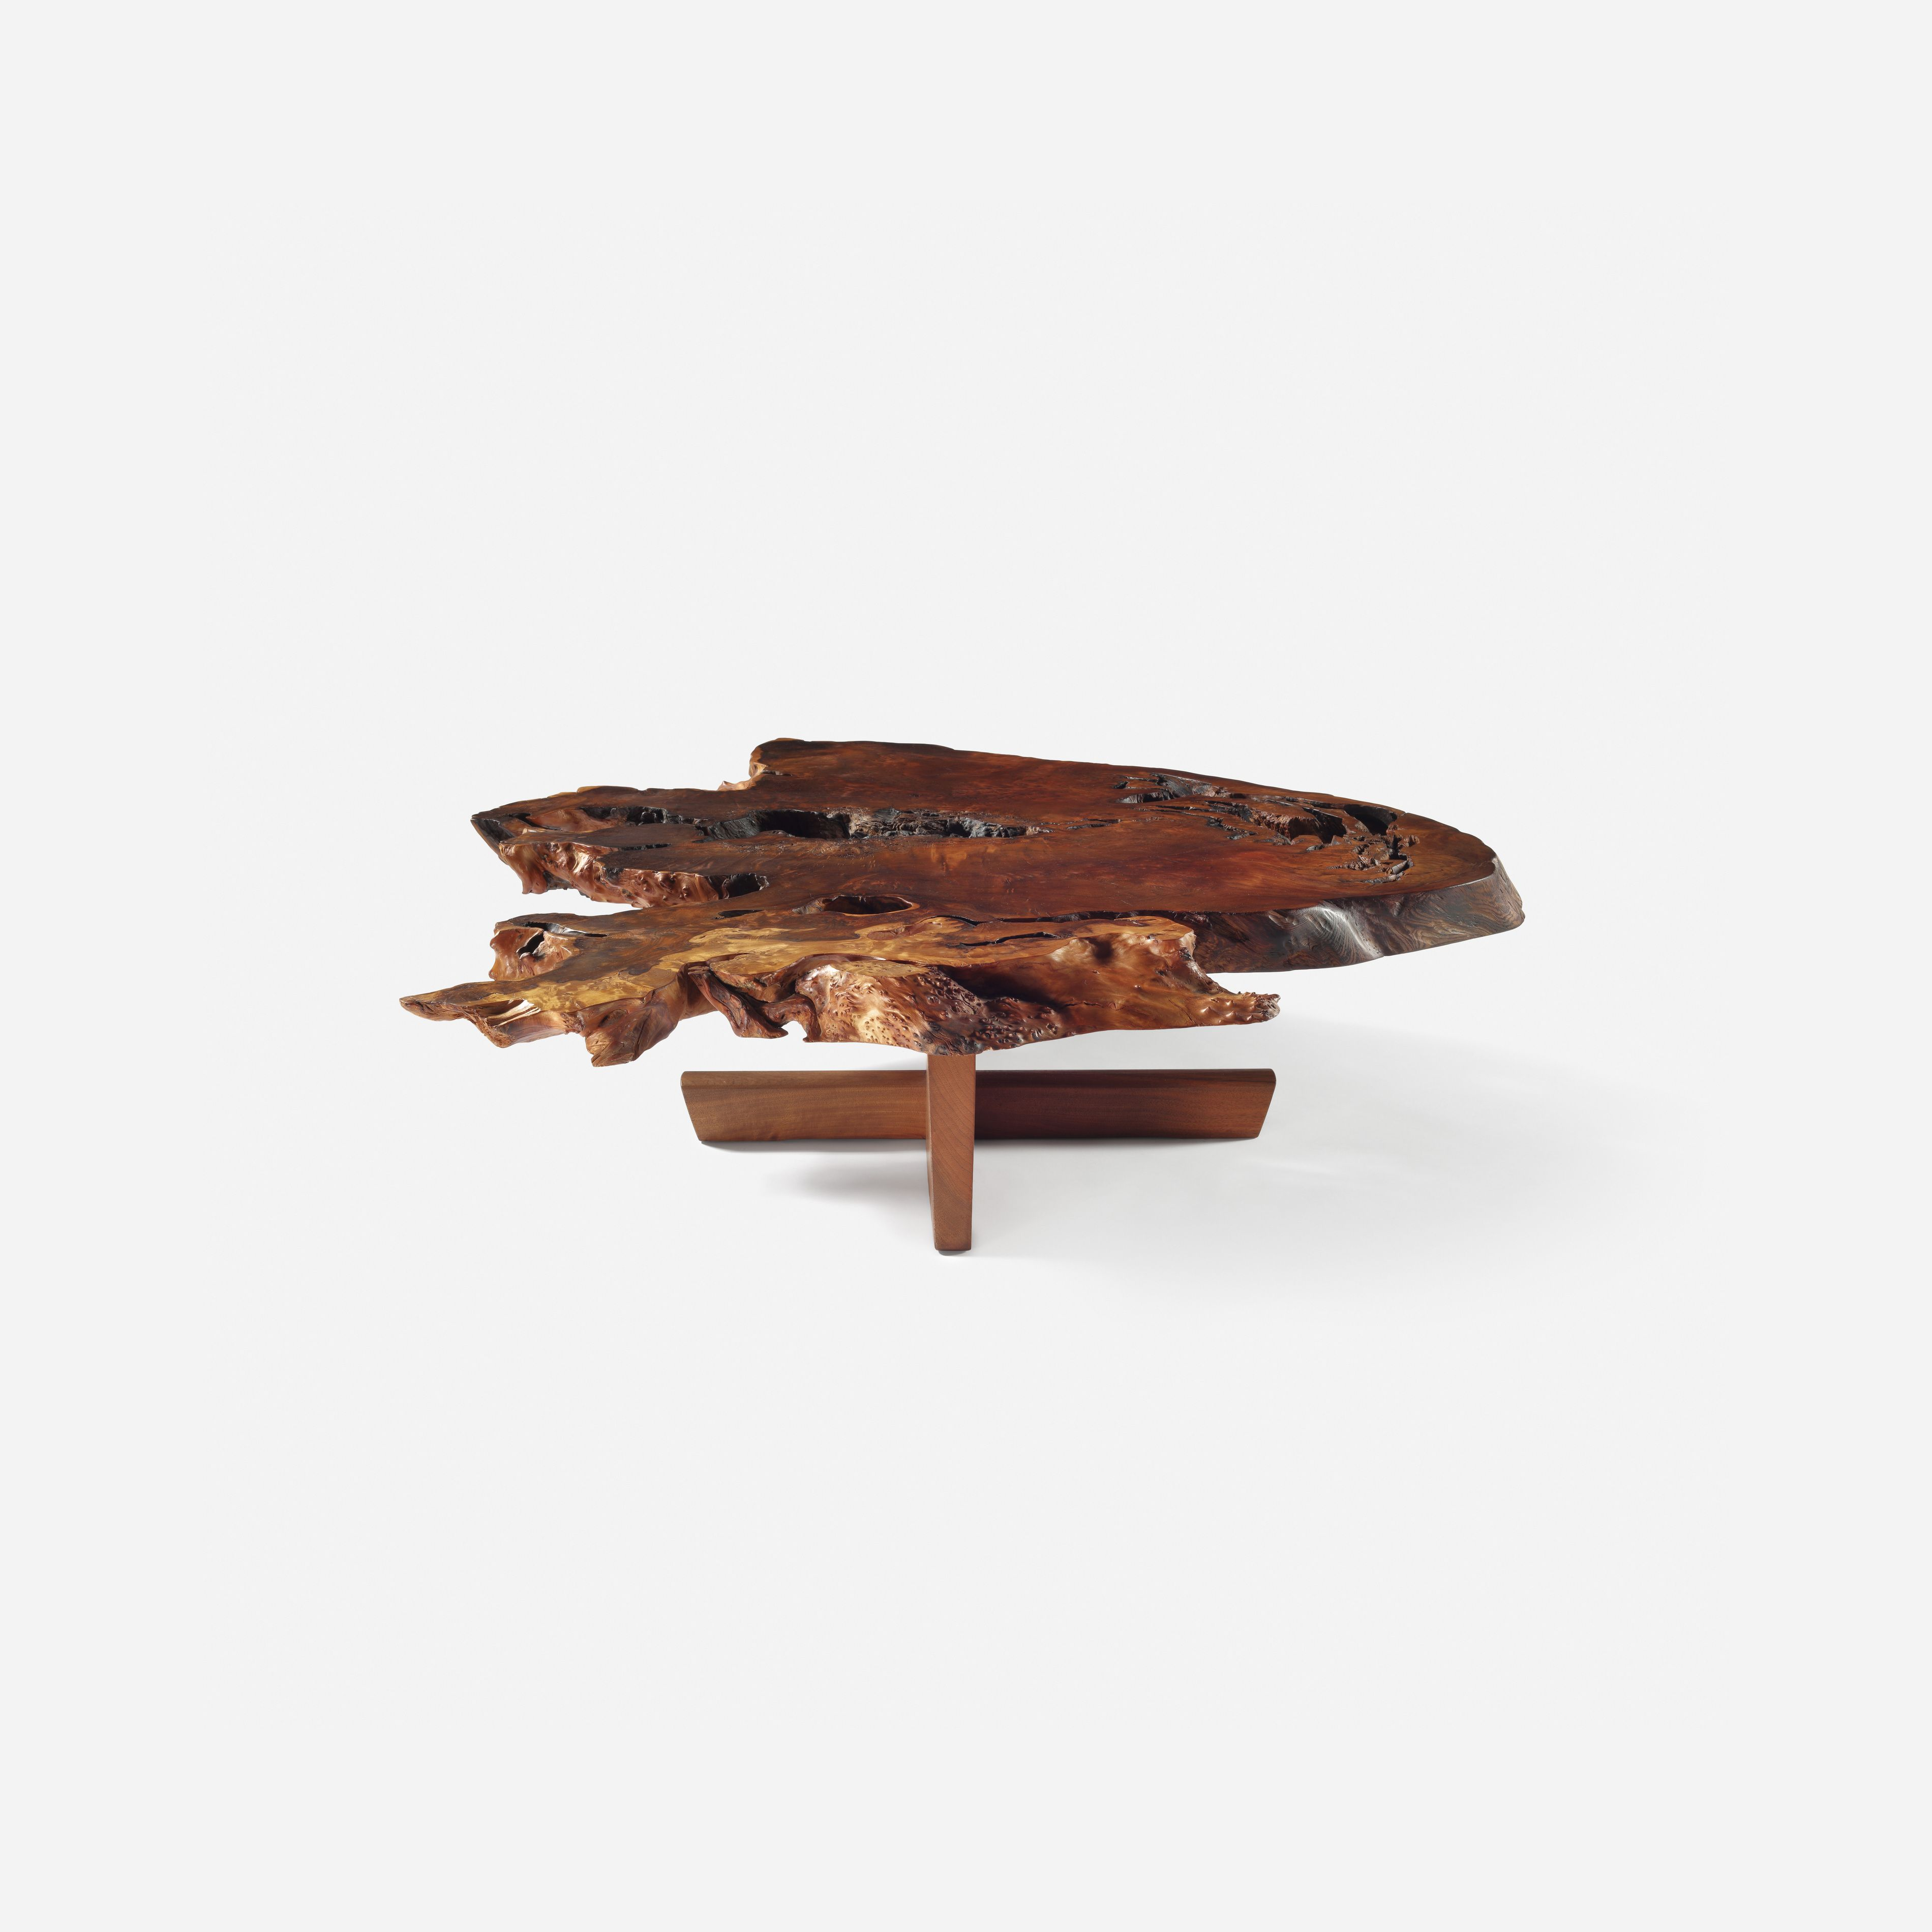 Lot 11: George Nakashima. Important and Rare Minguren coffee table. 1977, redwood root burl, American black walnut. 61¼ w x 53 d x 15¼ h in. estimate: $150,000–200,000. An exceptionally figured solid redwood slab top with sap grain detail, numerous fissures, burls, free edges and four walnut butterflies to underside. Client name to underside: [Hoffman]. Sold with a copy of the original order card and invoice and a letter of authentication from Mira Nakashima. Provenance: Acquired directly…